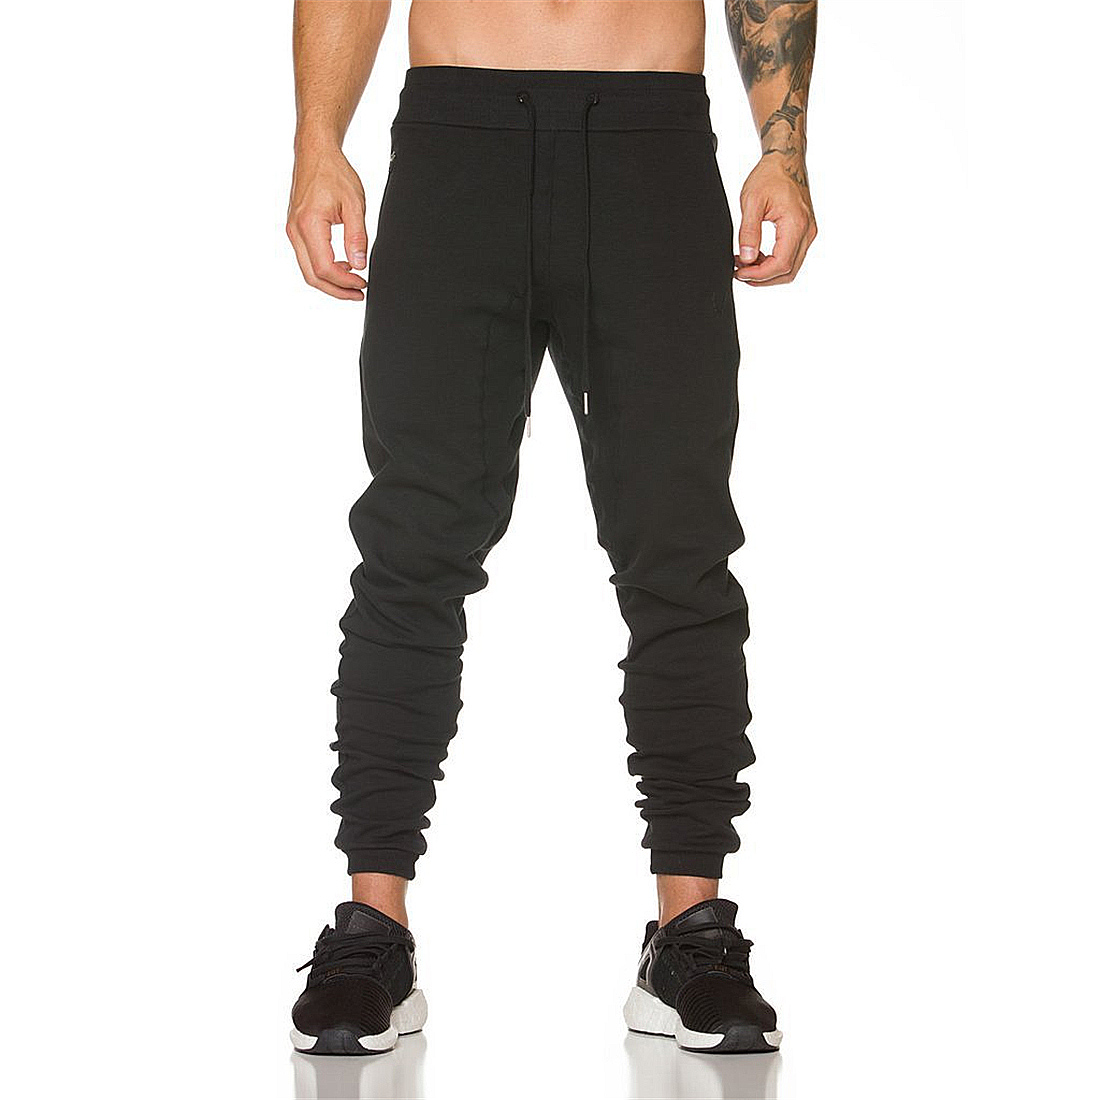 New Mens Harem Pants Casual Street Workout Sweat Skinny Pants Dance Wear Pencil Tracksuit Sportswear Loose Plus Size Pants Home